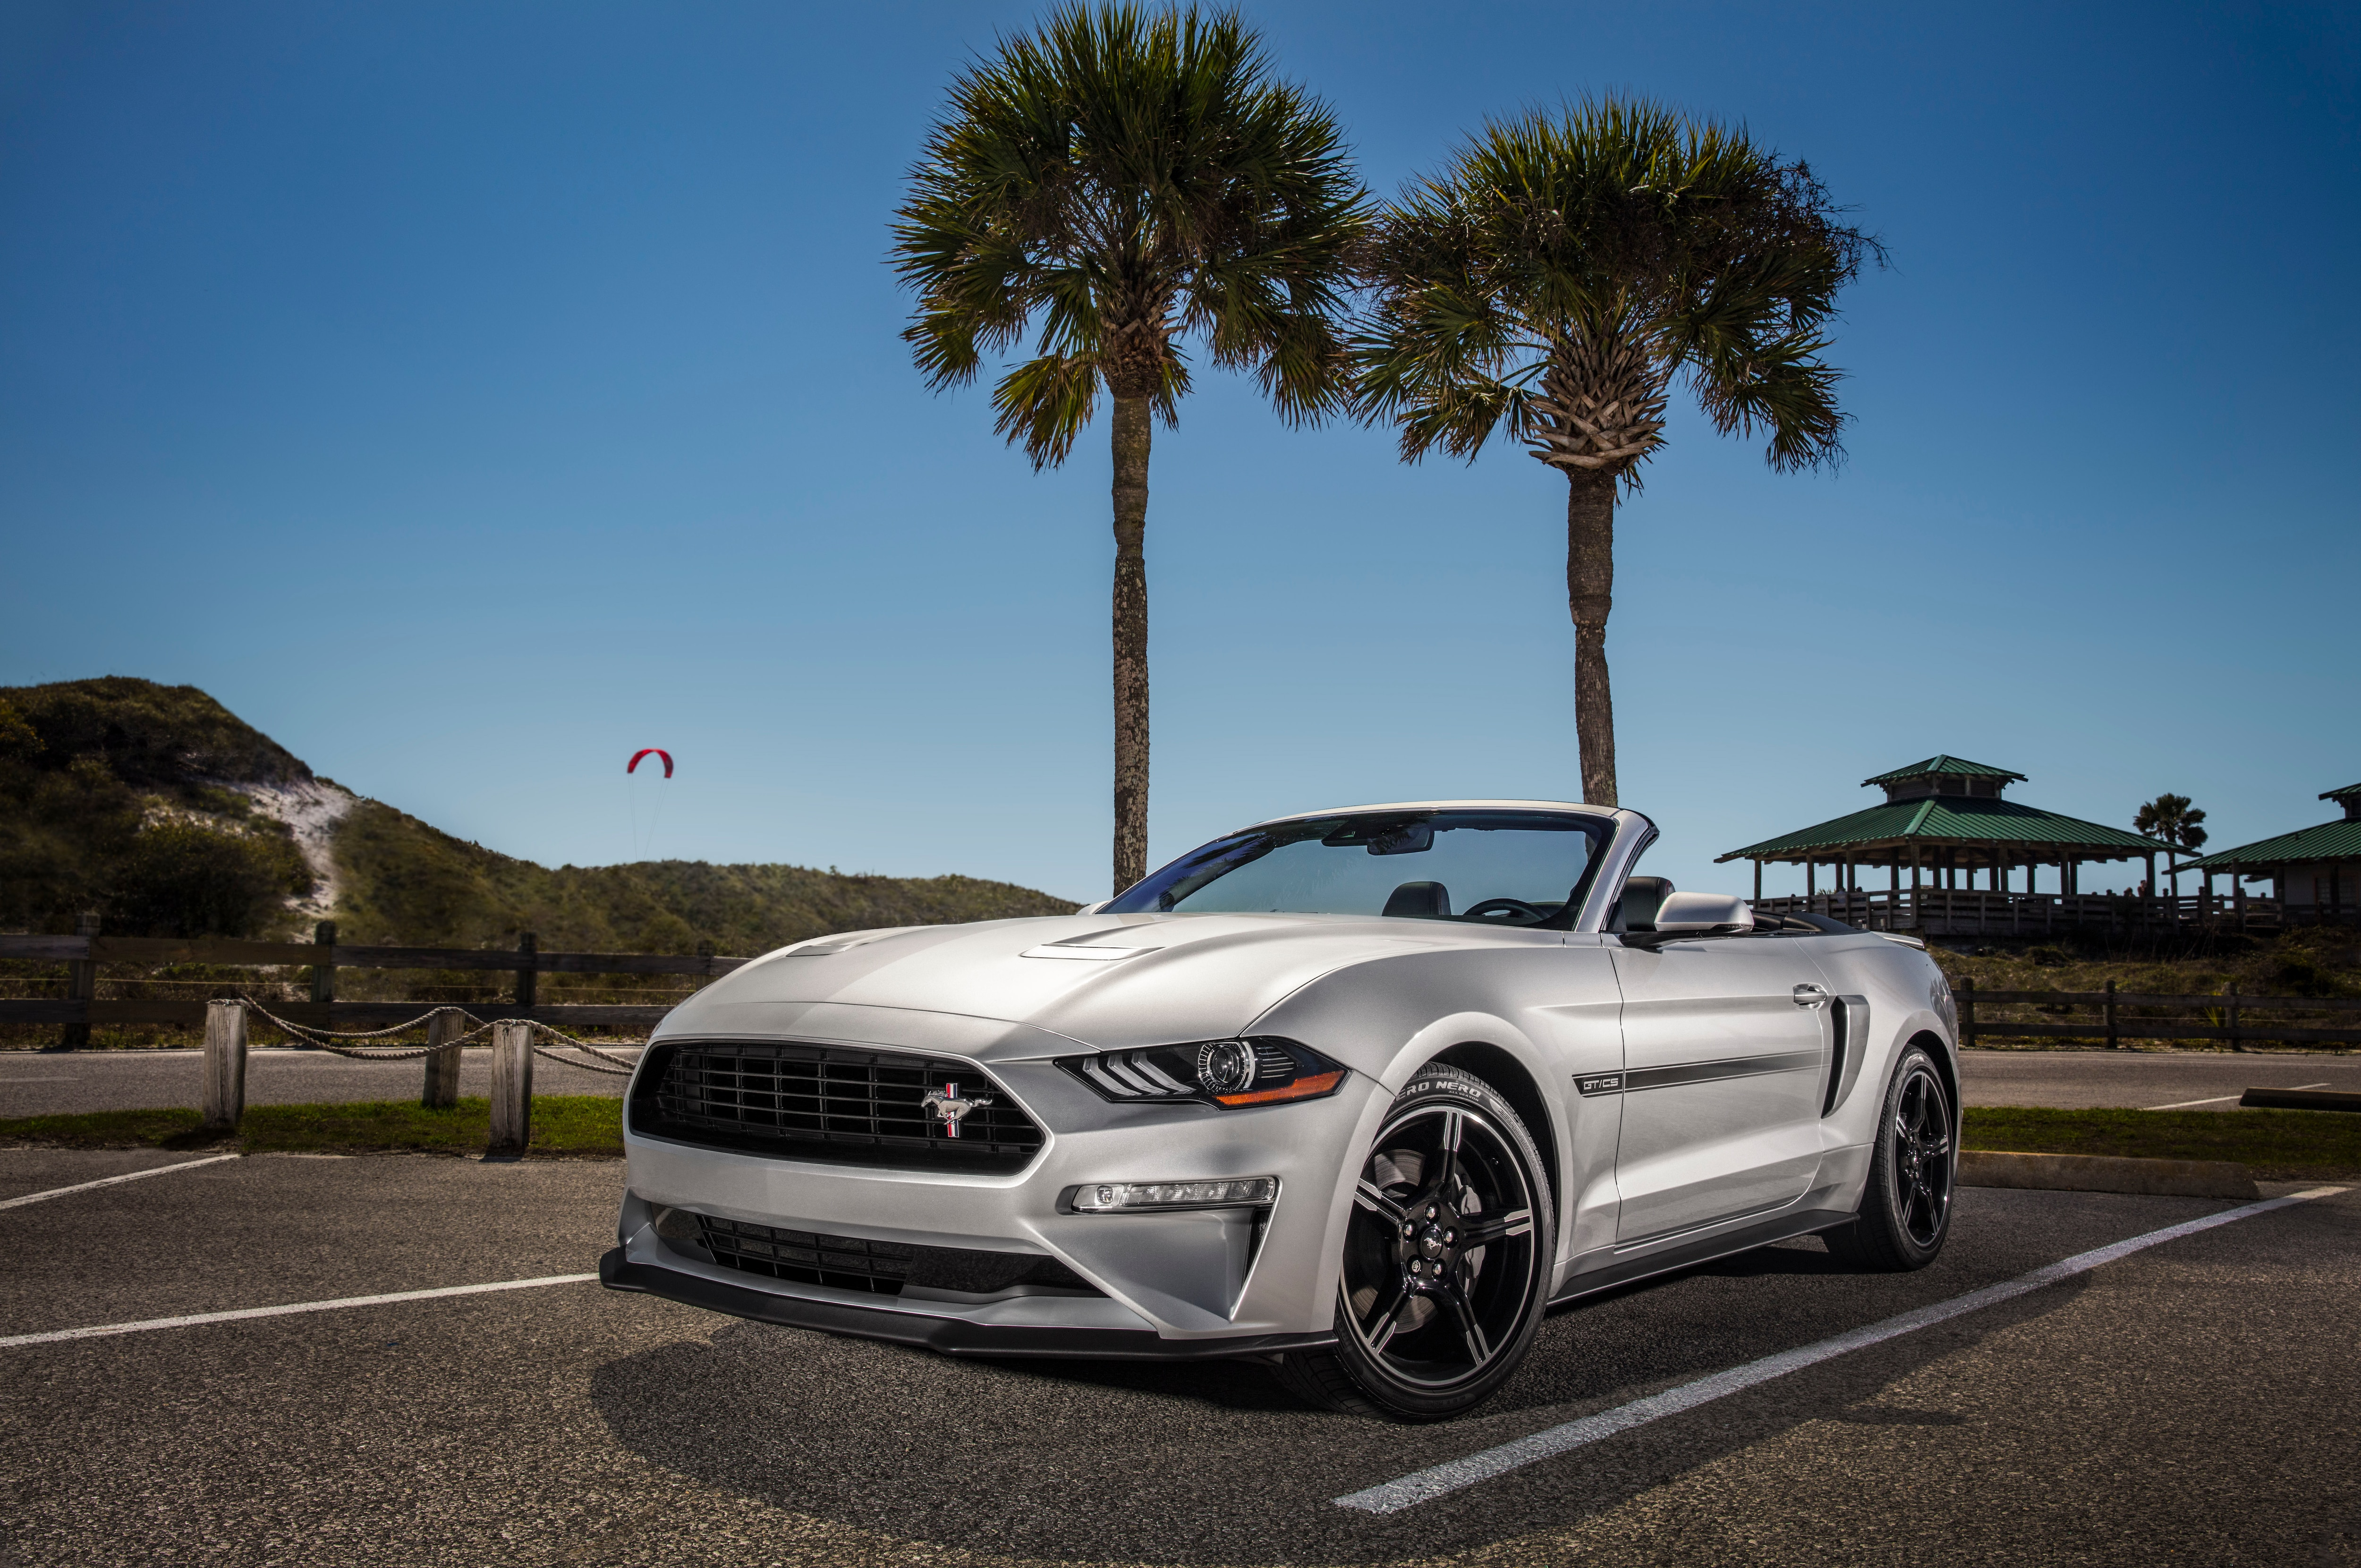 2019 Ford Mustang Gt California Special Is Here